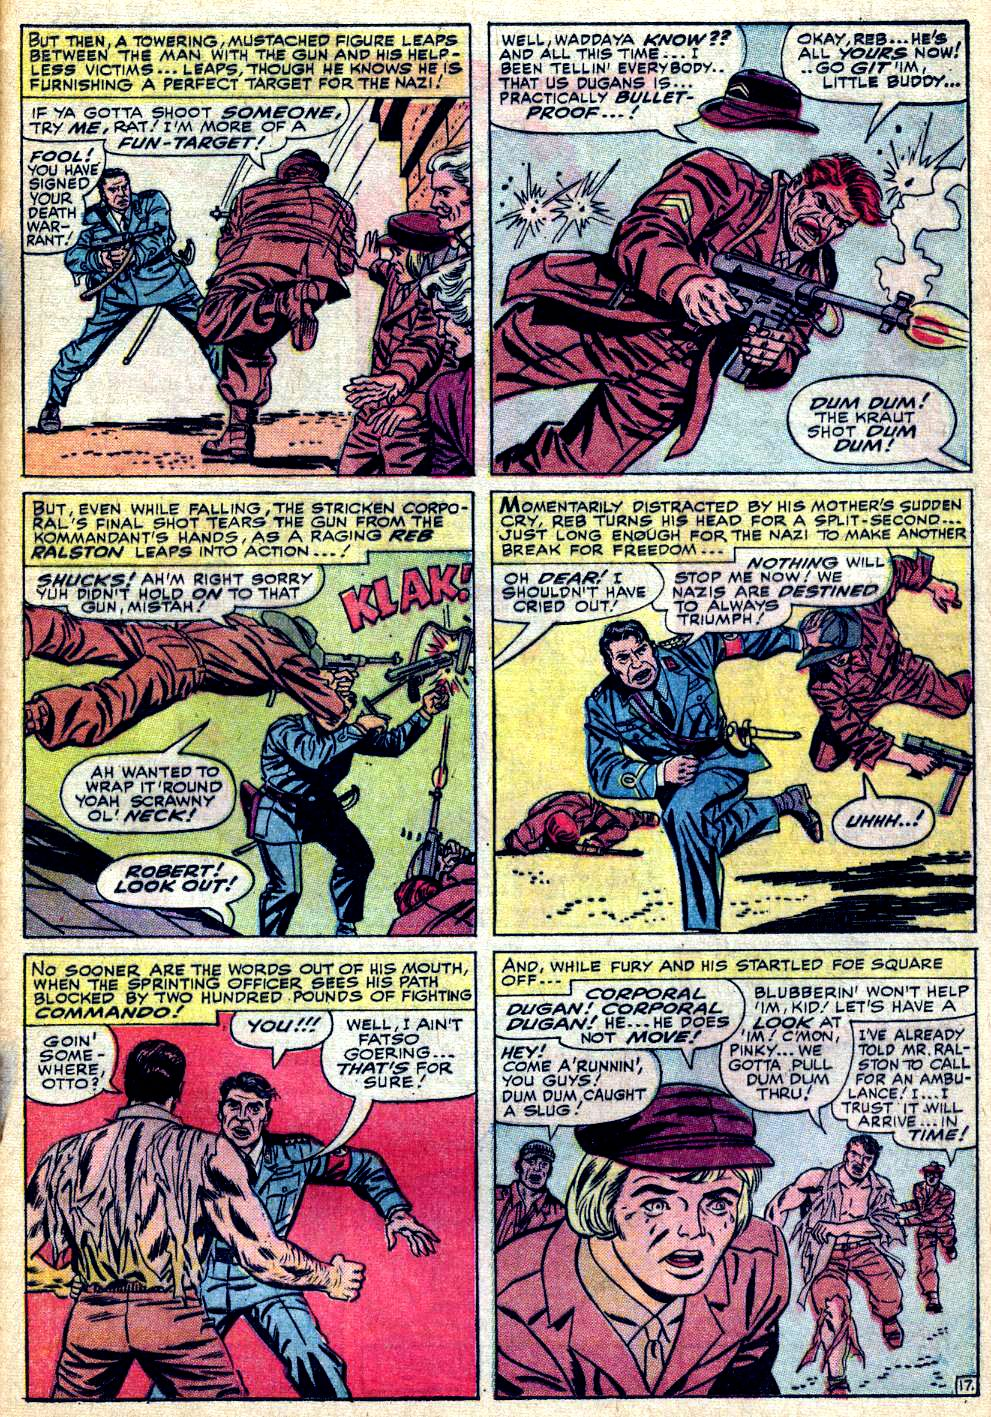 Read online Sgt. Fury comic -  Issue #24 - 25